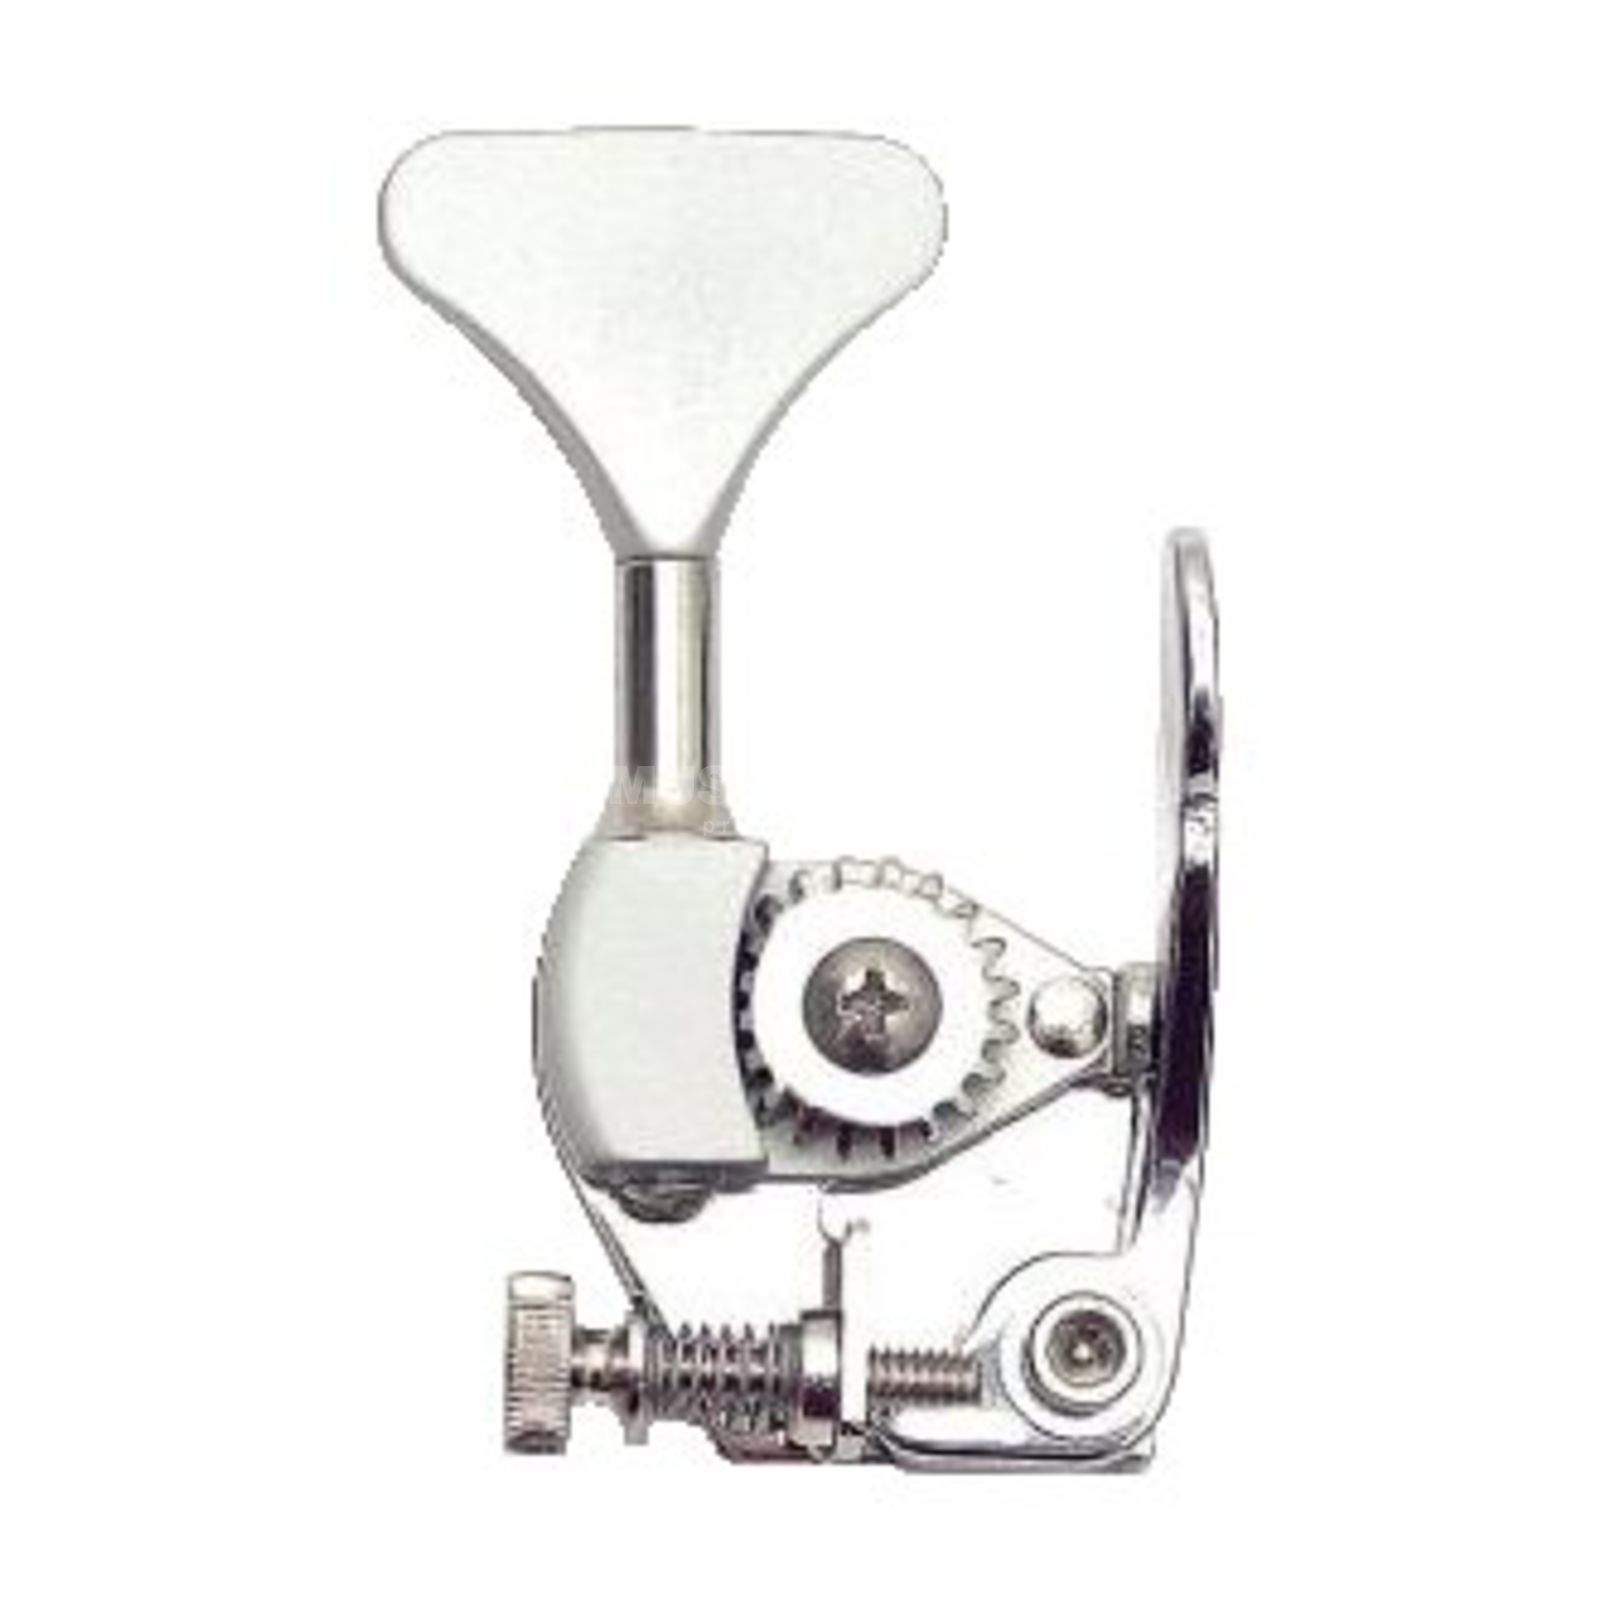 "Hipshot D'Tuner Extender Key HE6Y-3/8"" Y Key Ultralite Chrome Product Image"